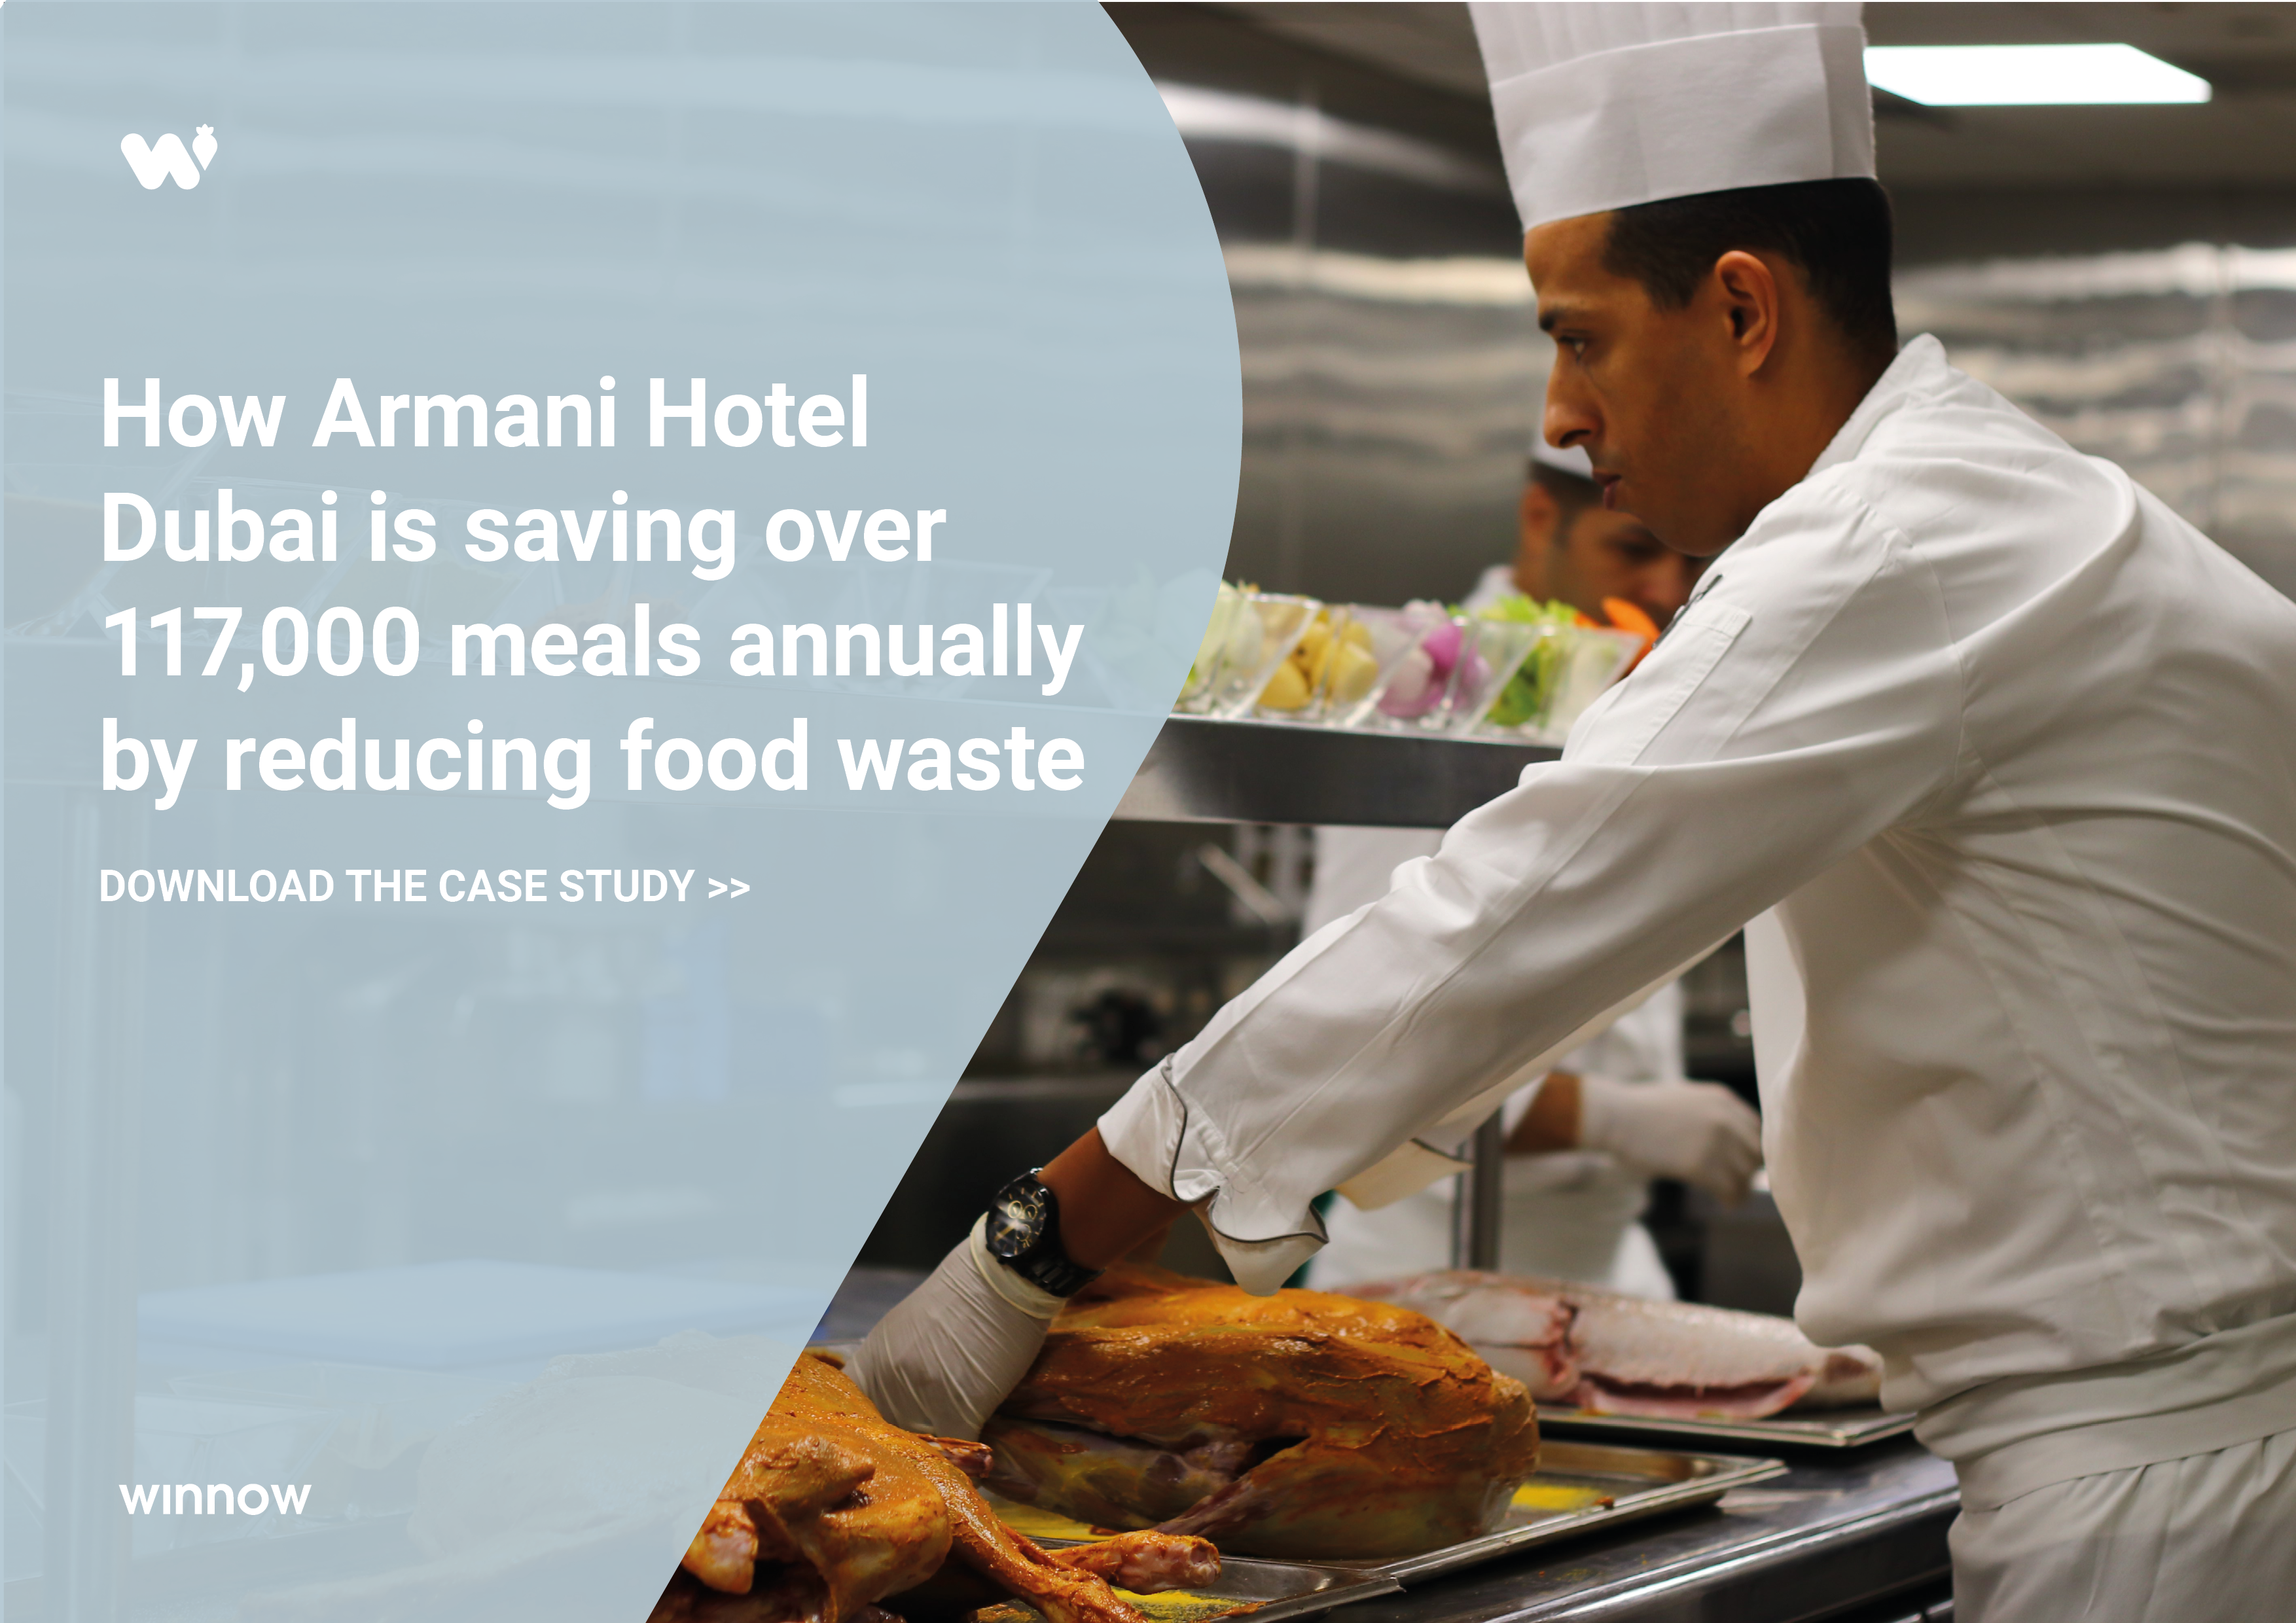 Image for landing page_armani hotel